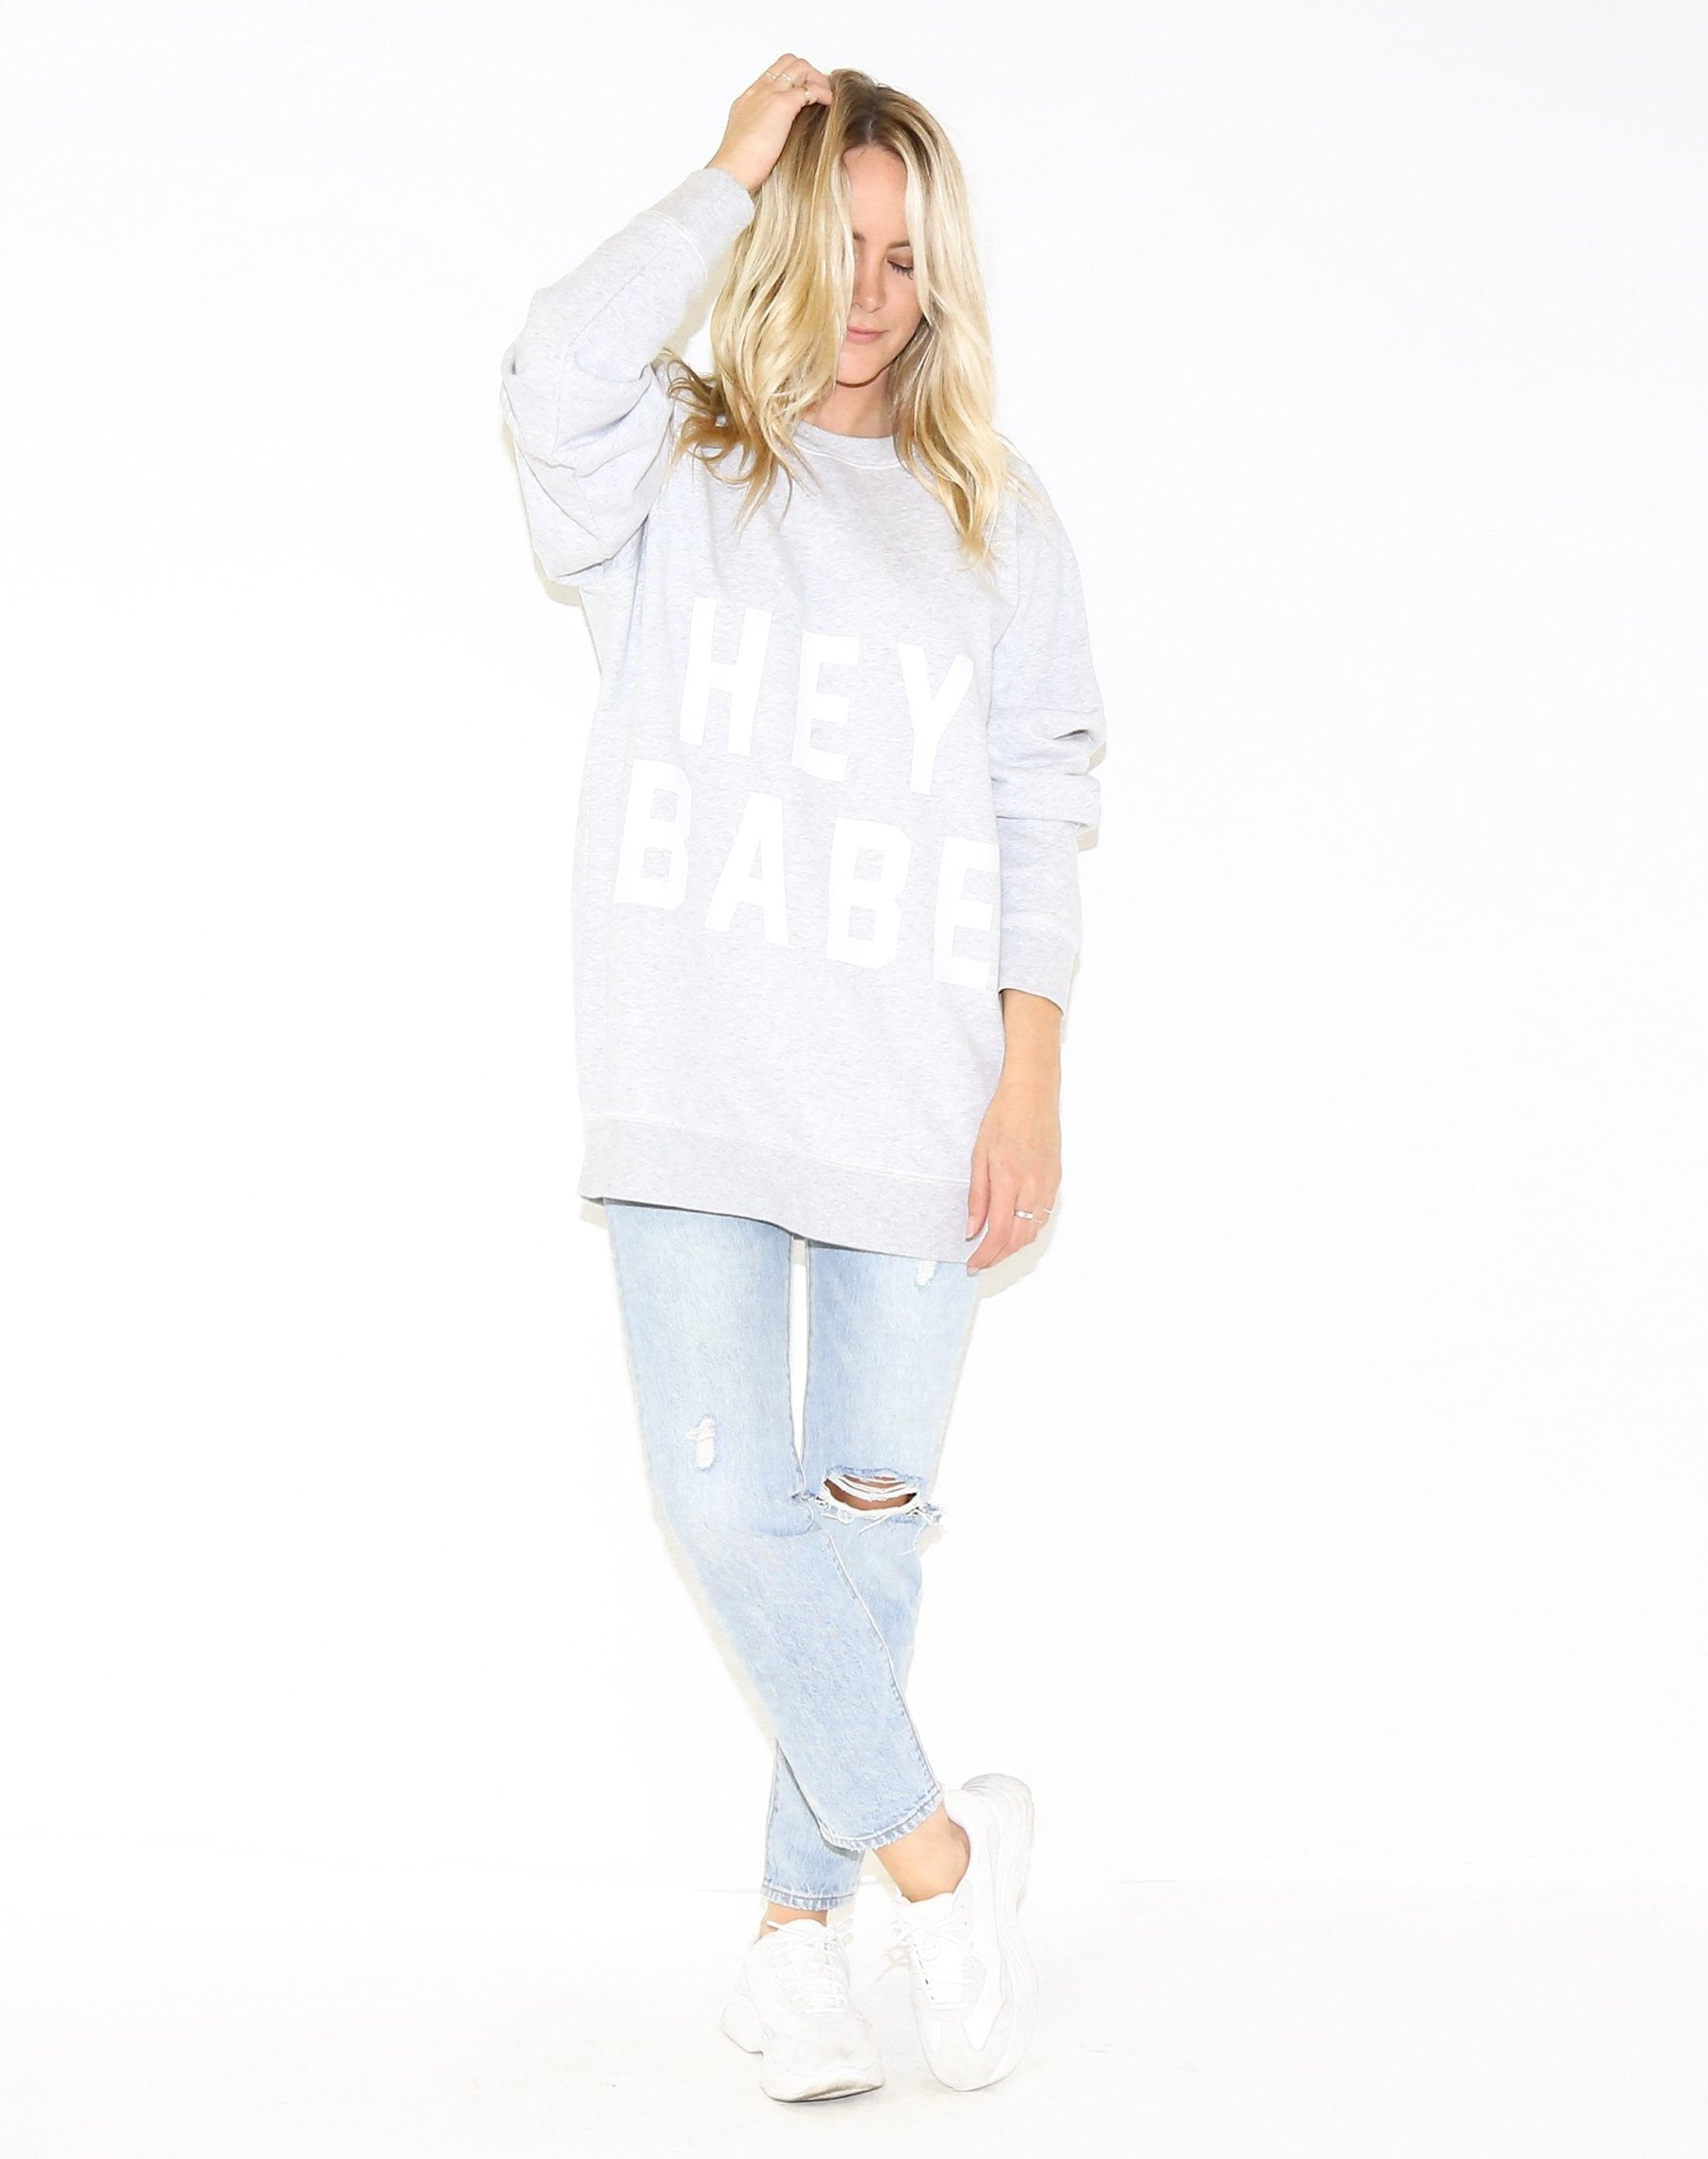 Photo 3 of the Hey Babe big sister crew neck sweatshirt in pebble grey by Brunette the Label.